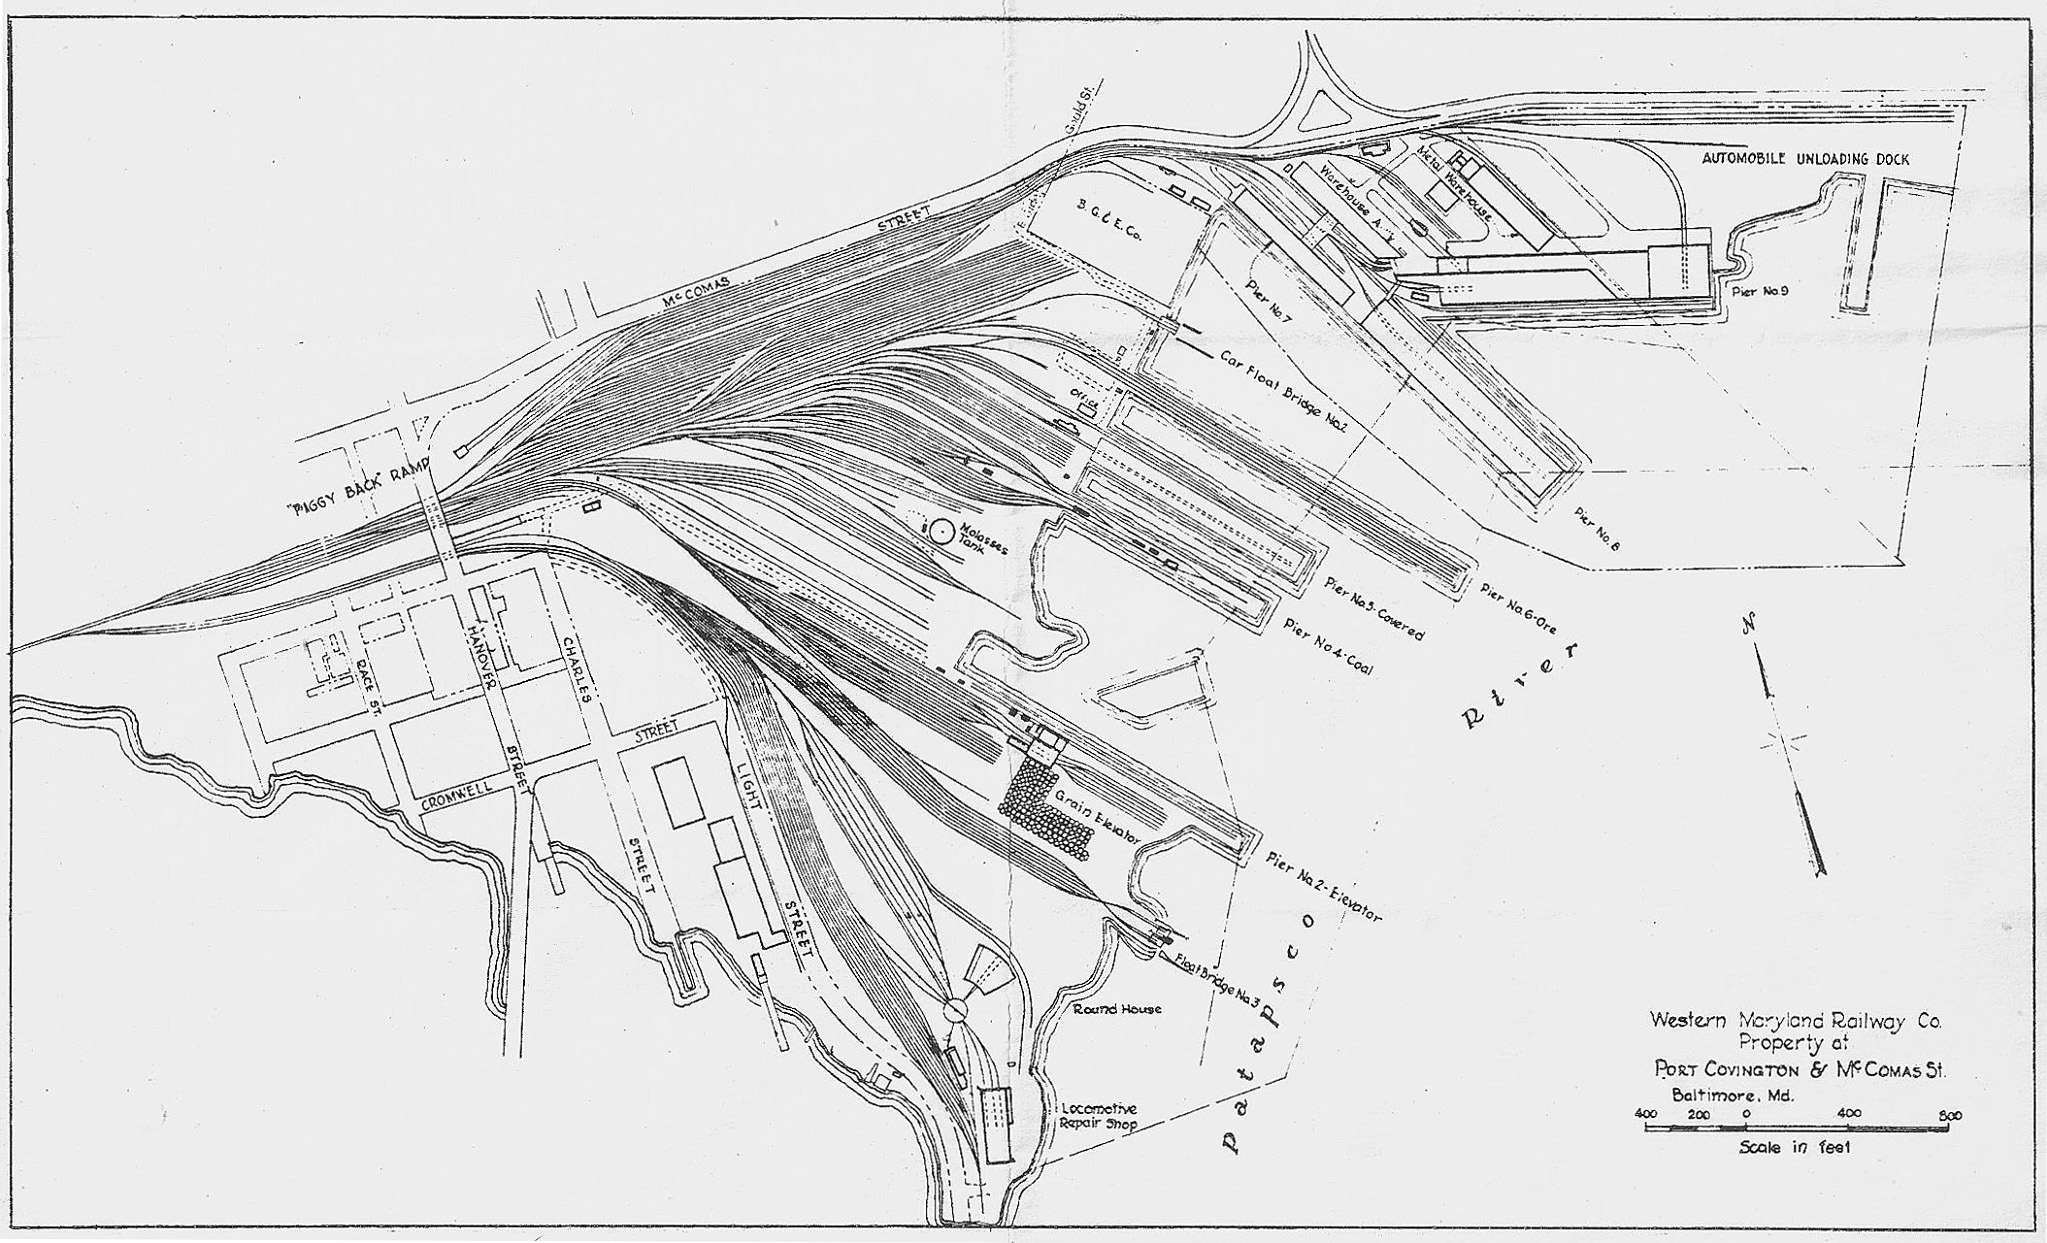 Wmry Tidewater Division Ca Layout Design